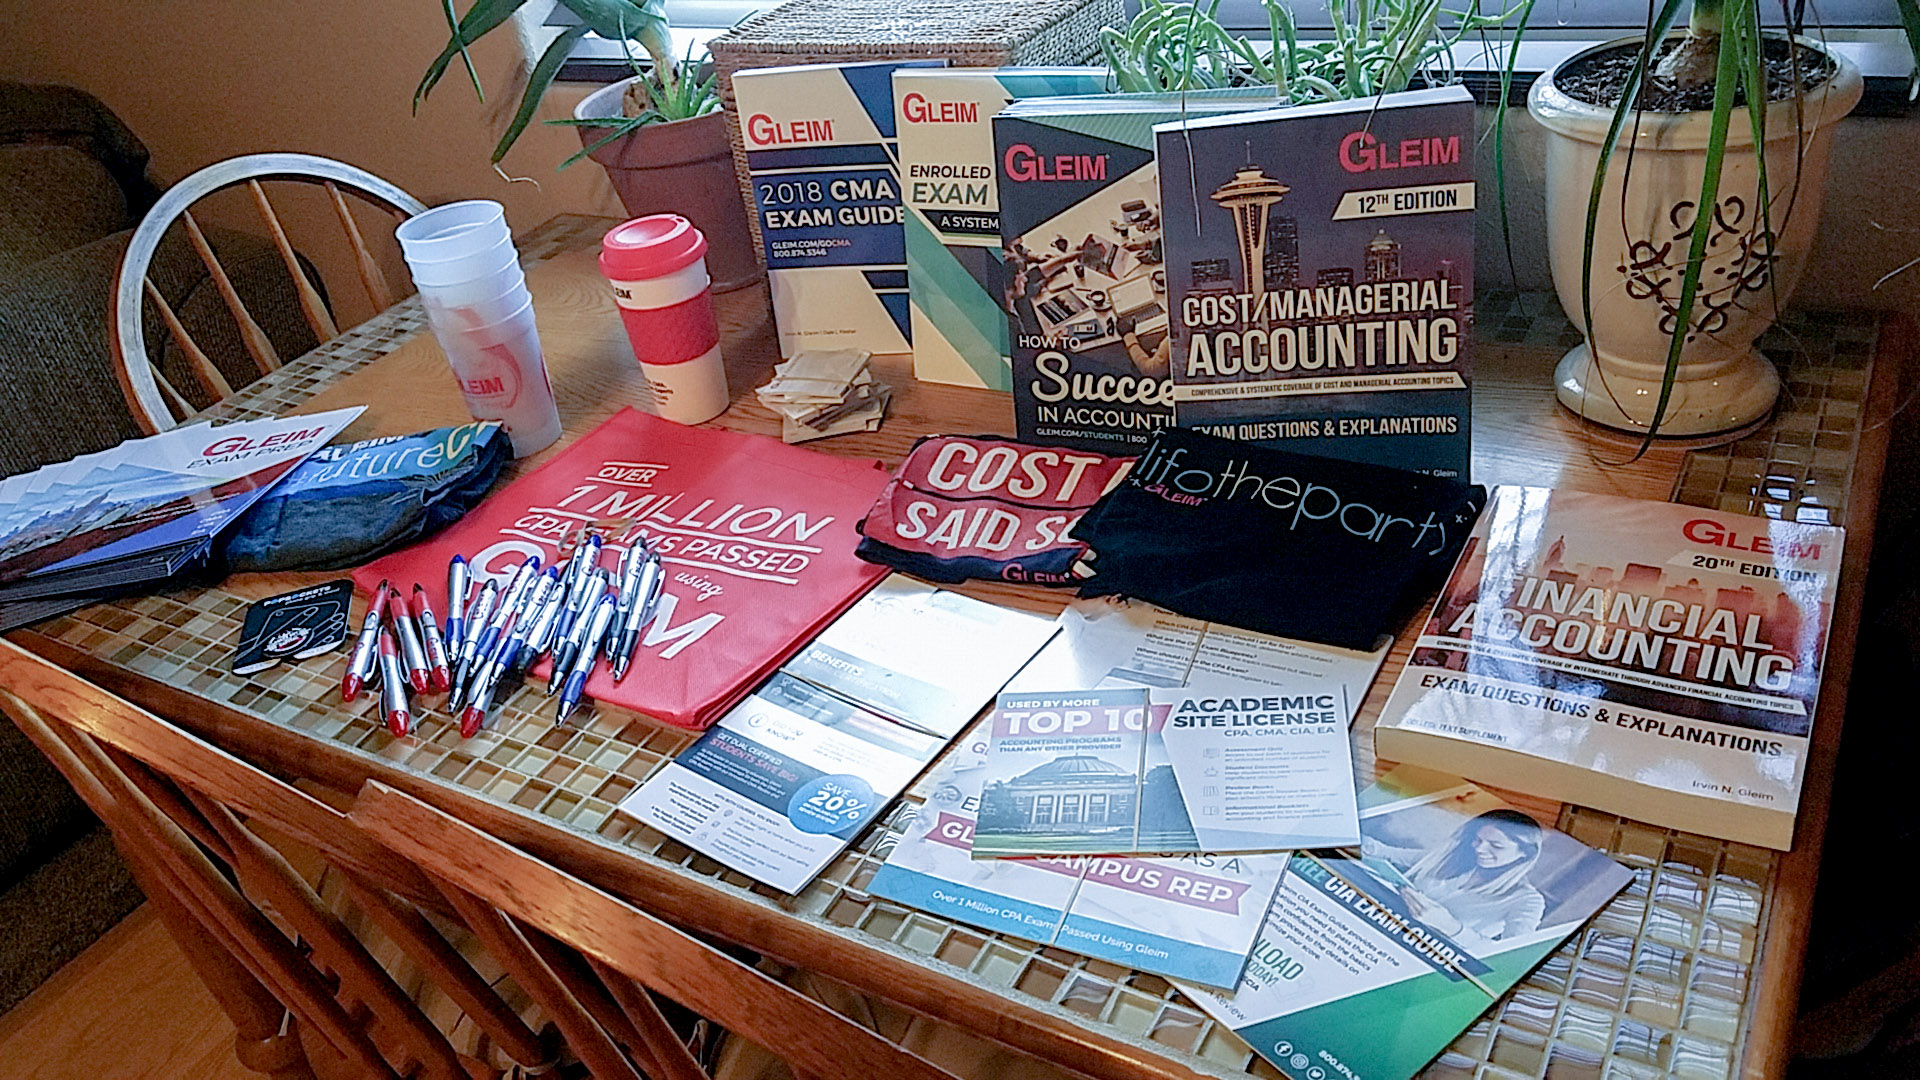 Tabletop filled with Campus Rep materials.